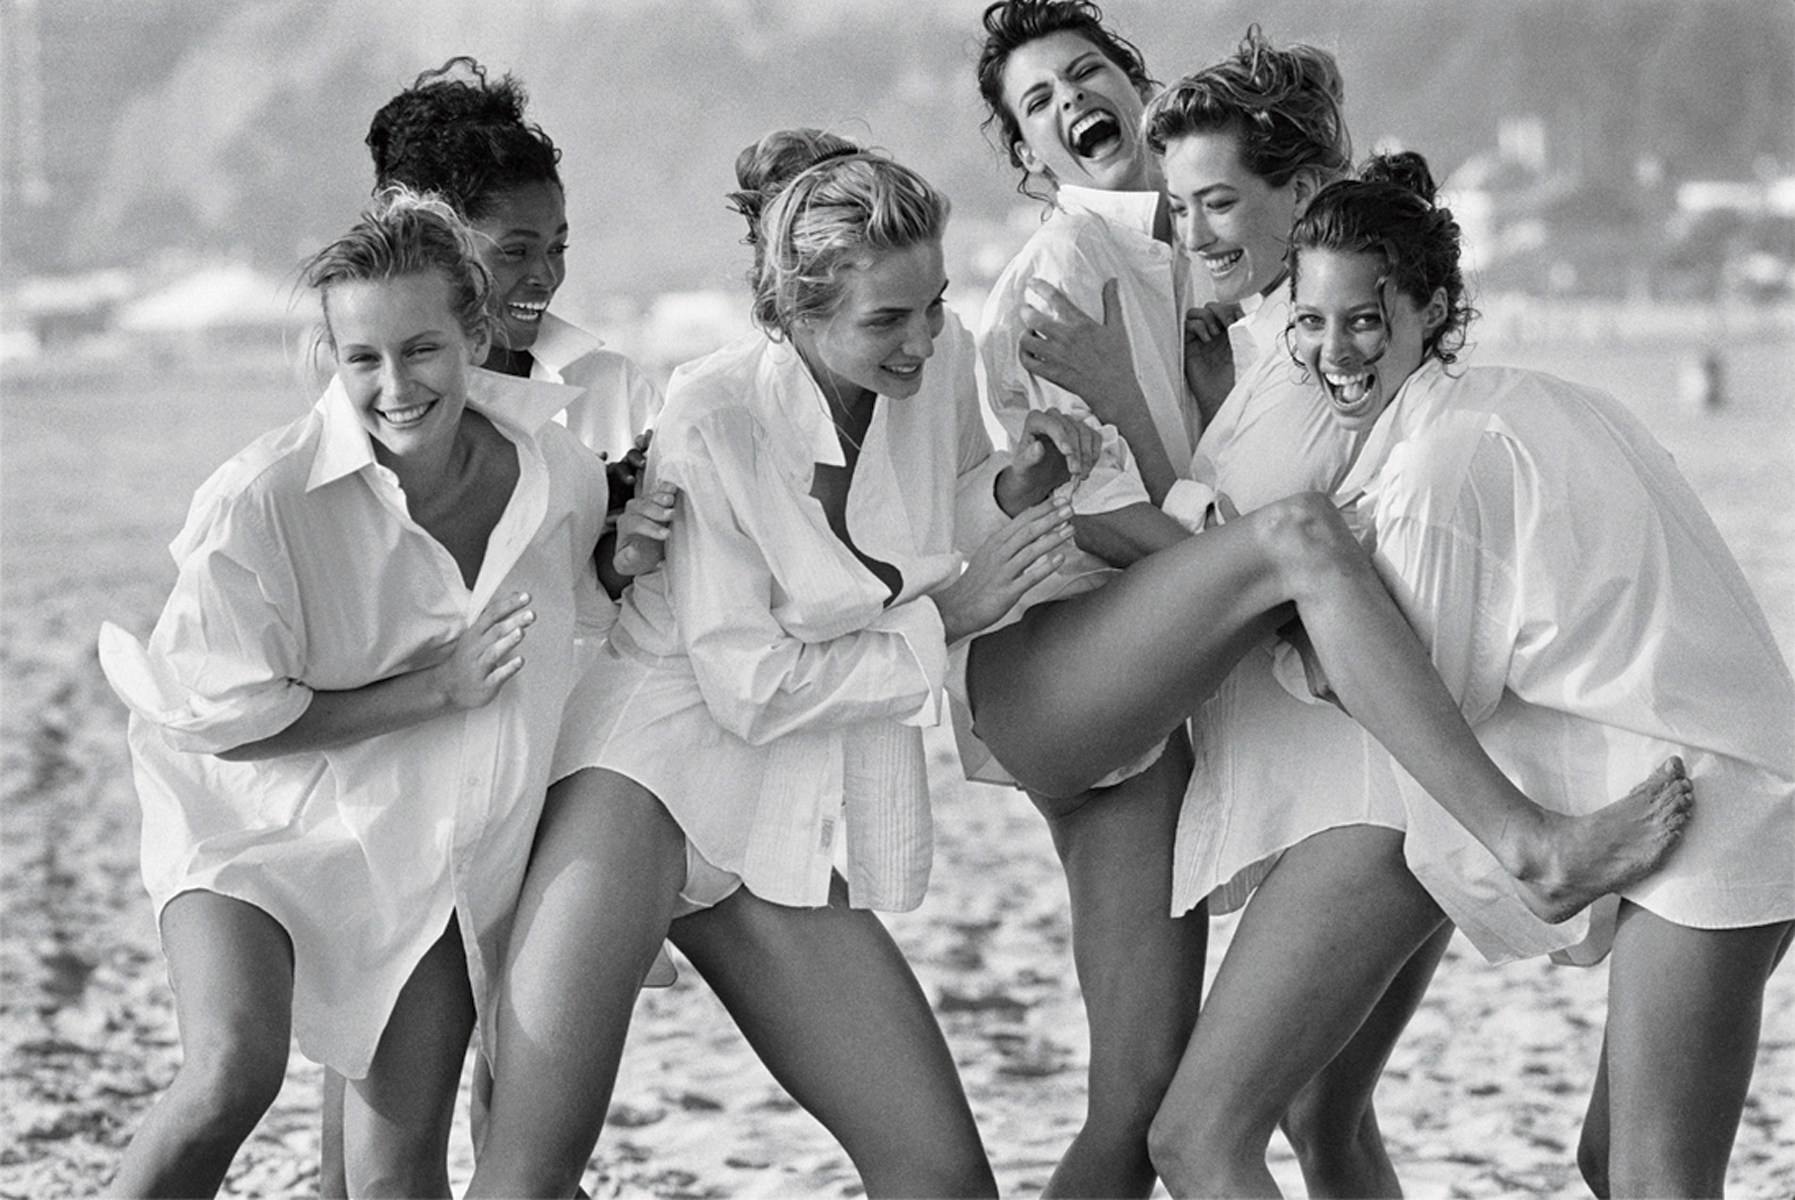 Peter LIindbergh Photographer of supermodels on beach